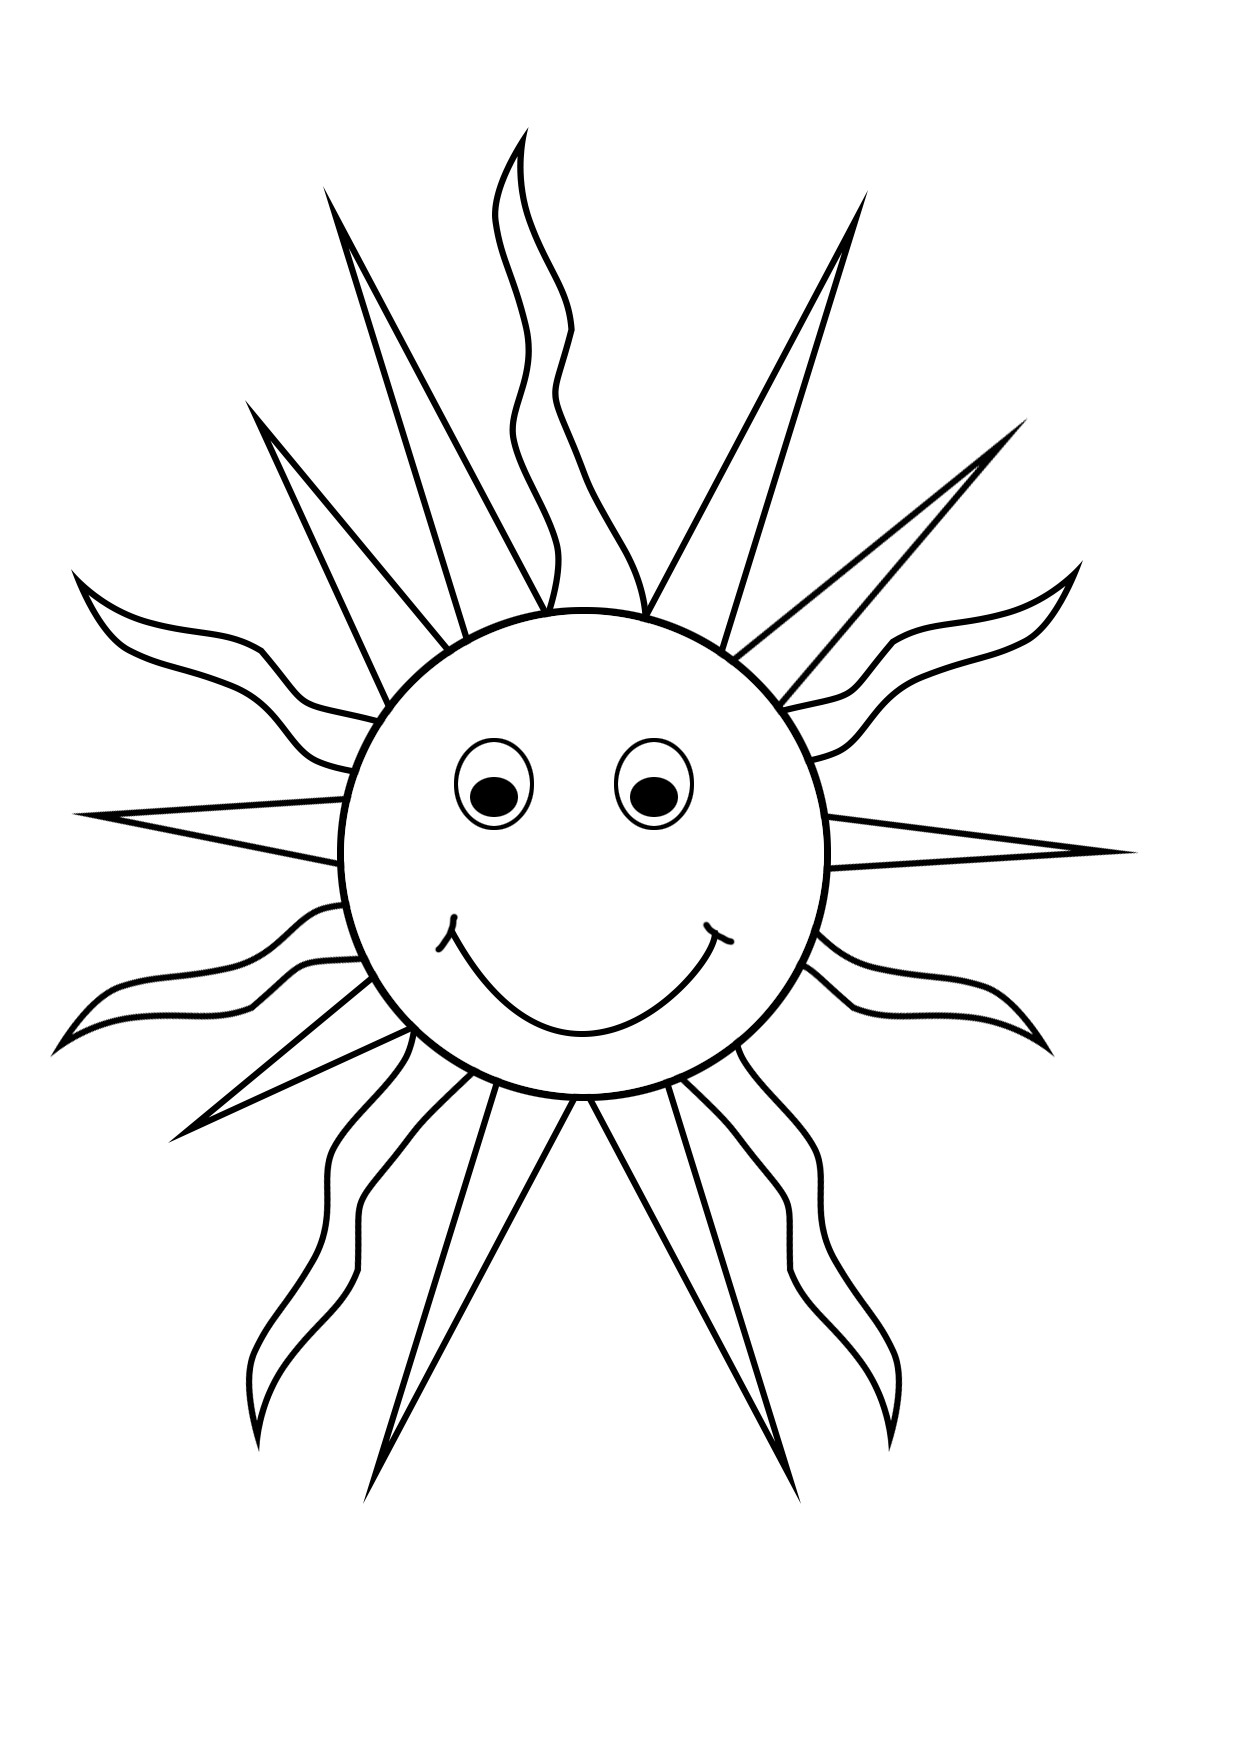 happy sun coloring sheet summer coloring pages - Sun Coloring Page